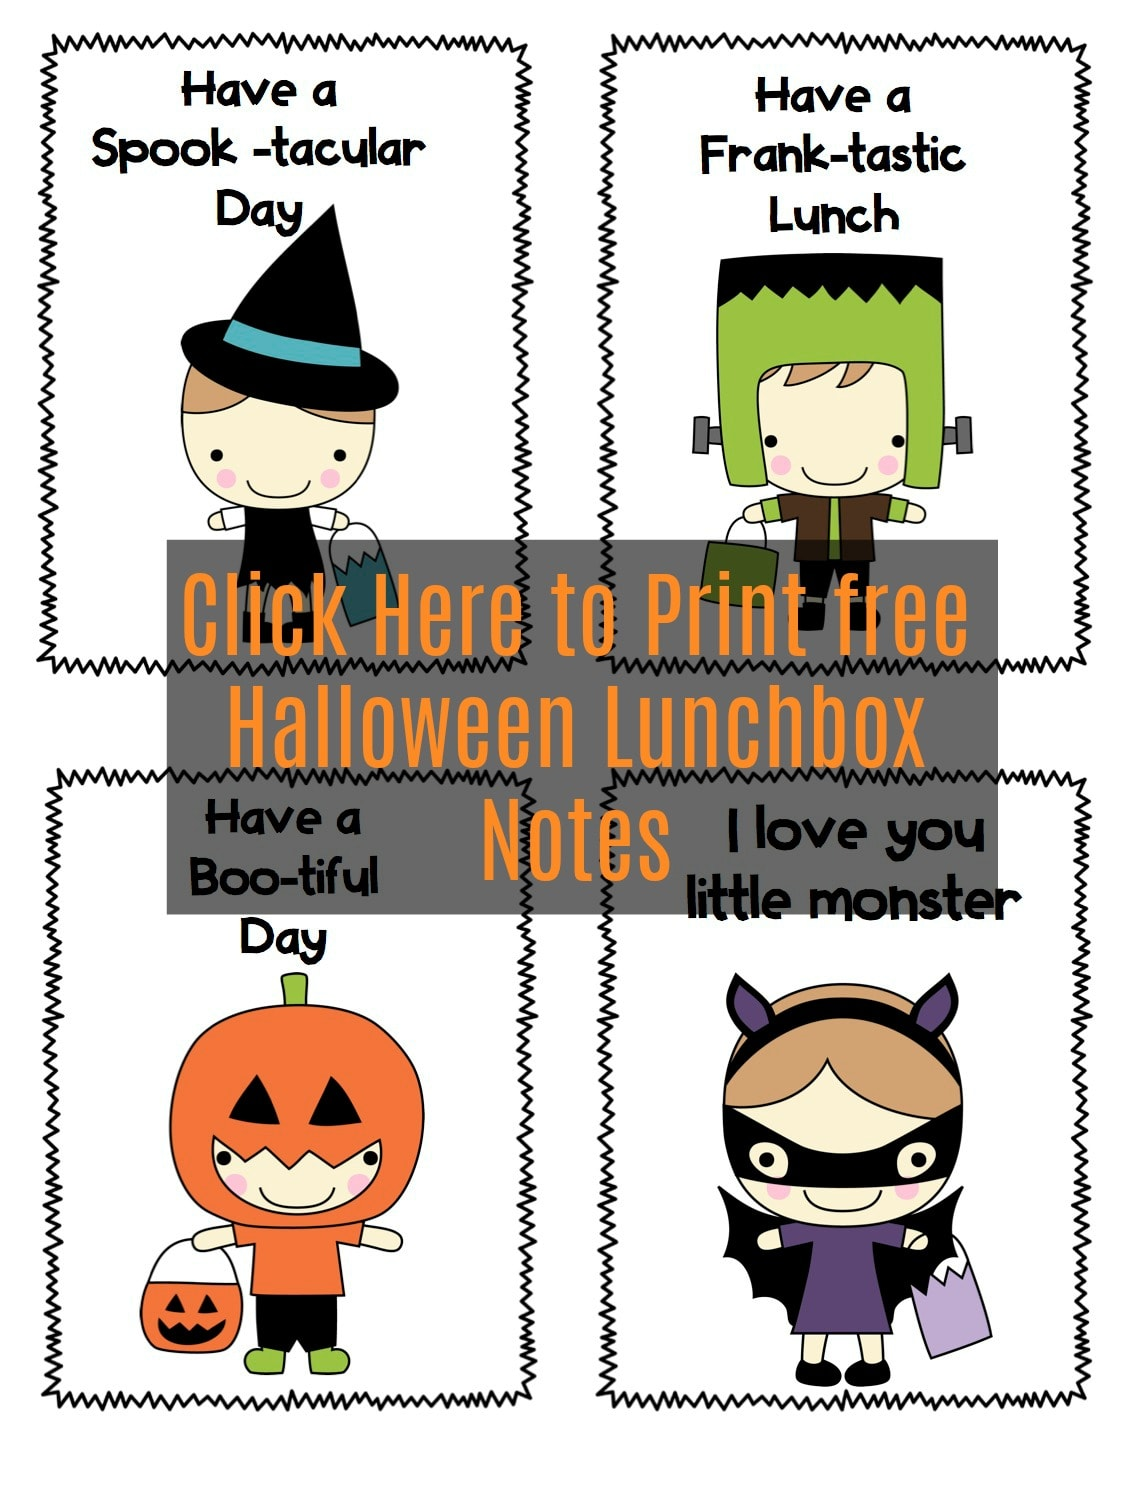 Free Halloween Lunch Notes